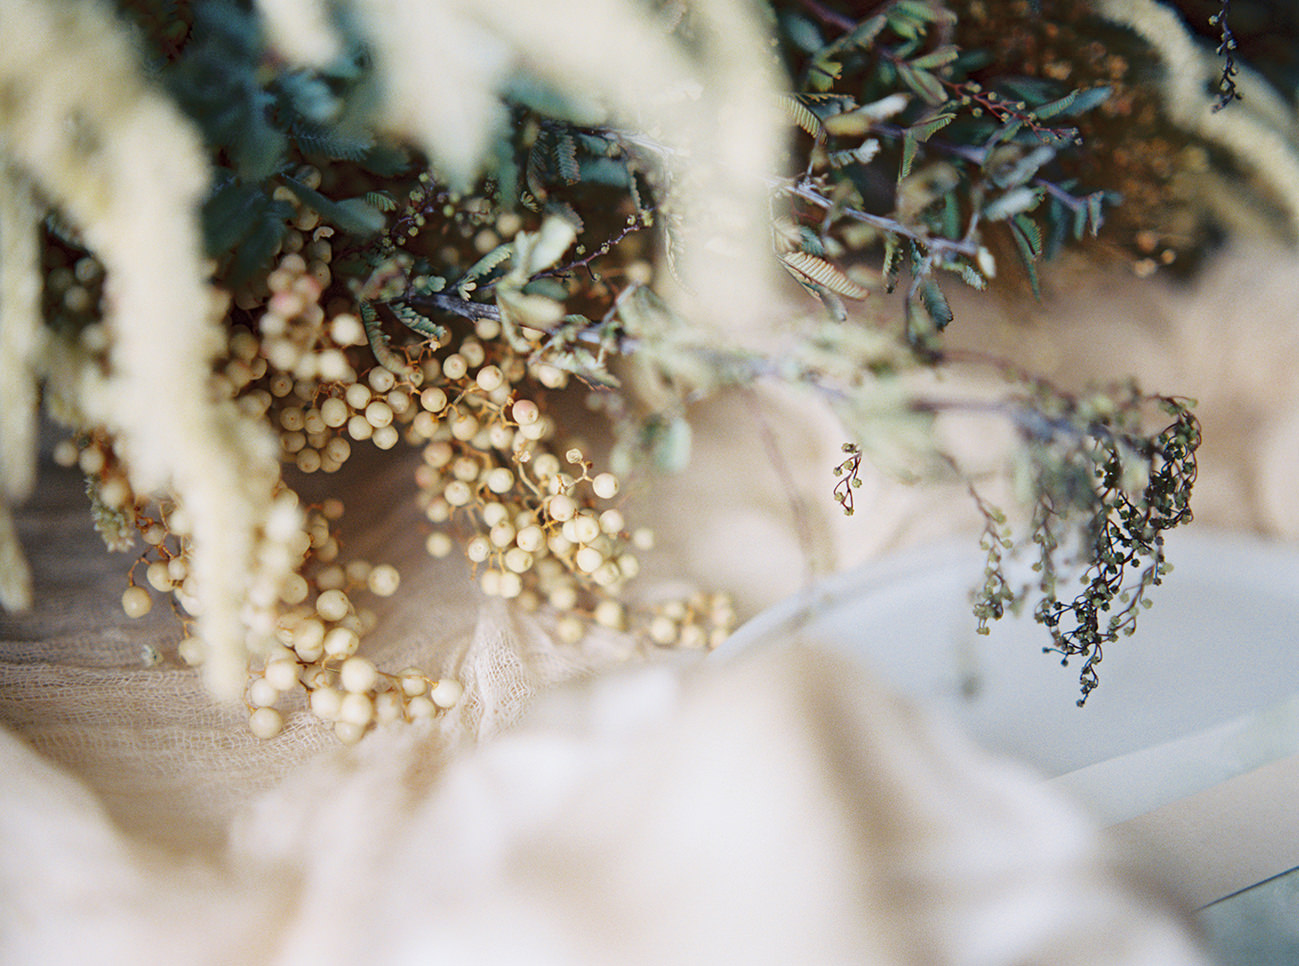 Bridal Inspiration, Wedding Bouquet, Hääkuvaus, Film Wedding Photographer, Table Setting Inspiration, Stationery, Dried Flowers, www.nordandmae.com, www.susannanordvall (32).jpg